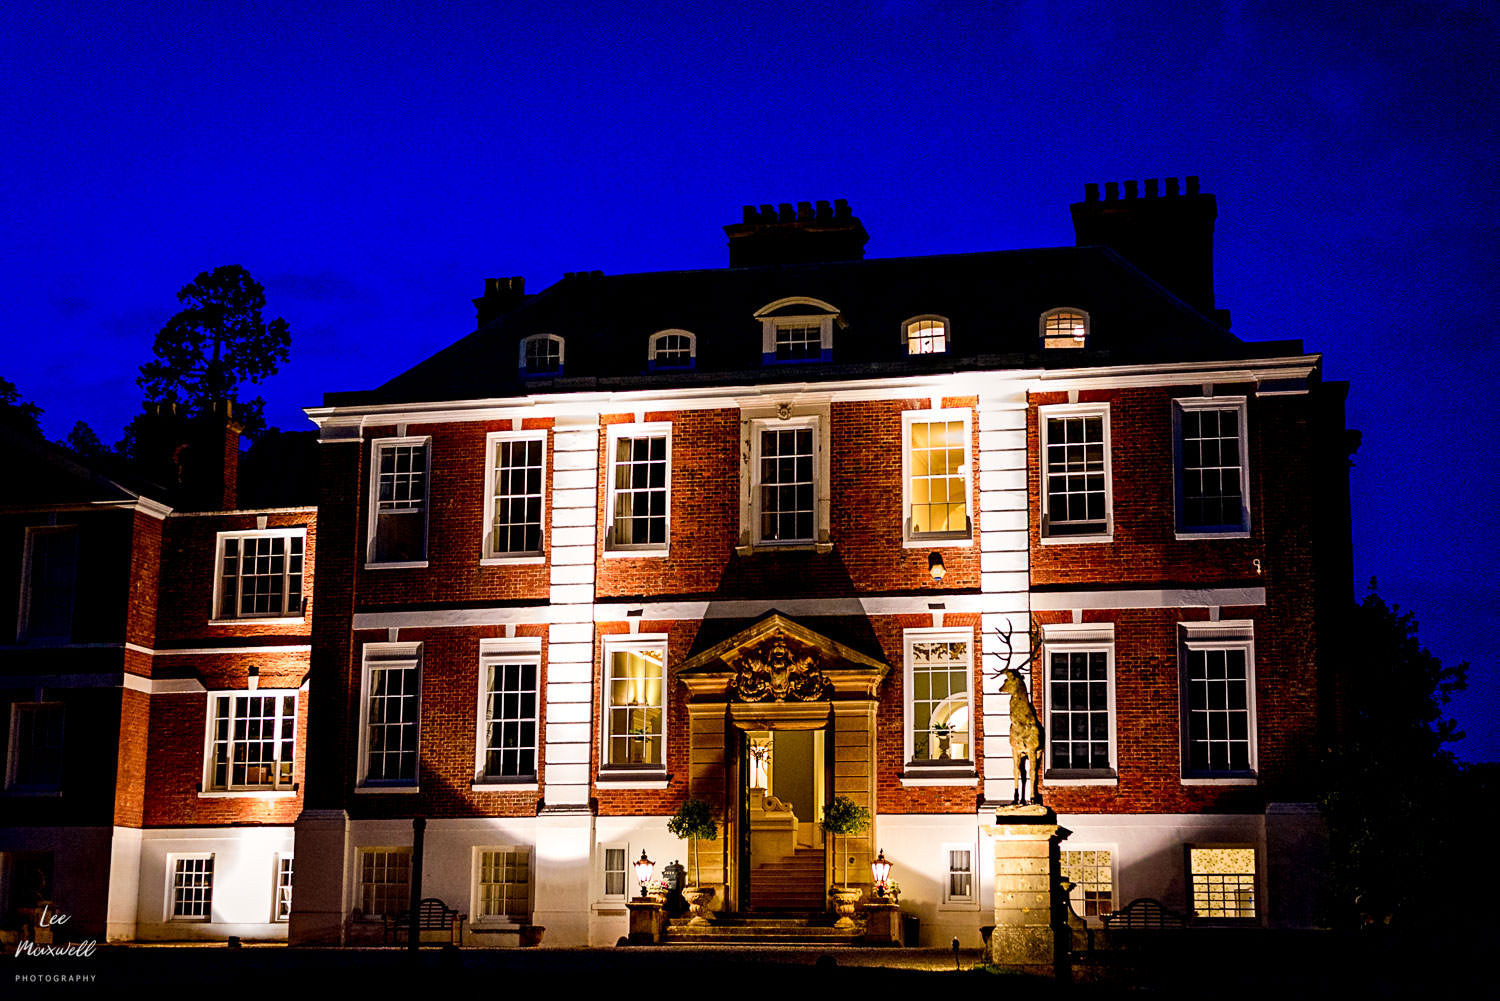 Pynes House, Exeter, at night